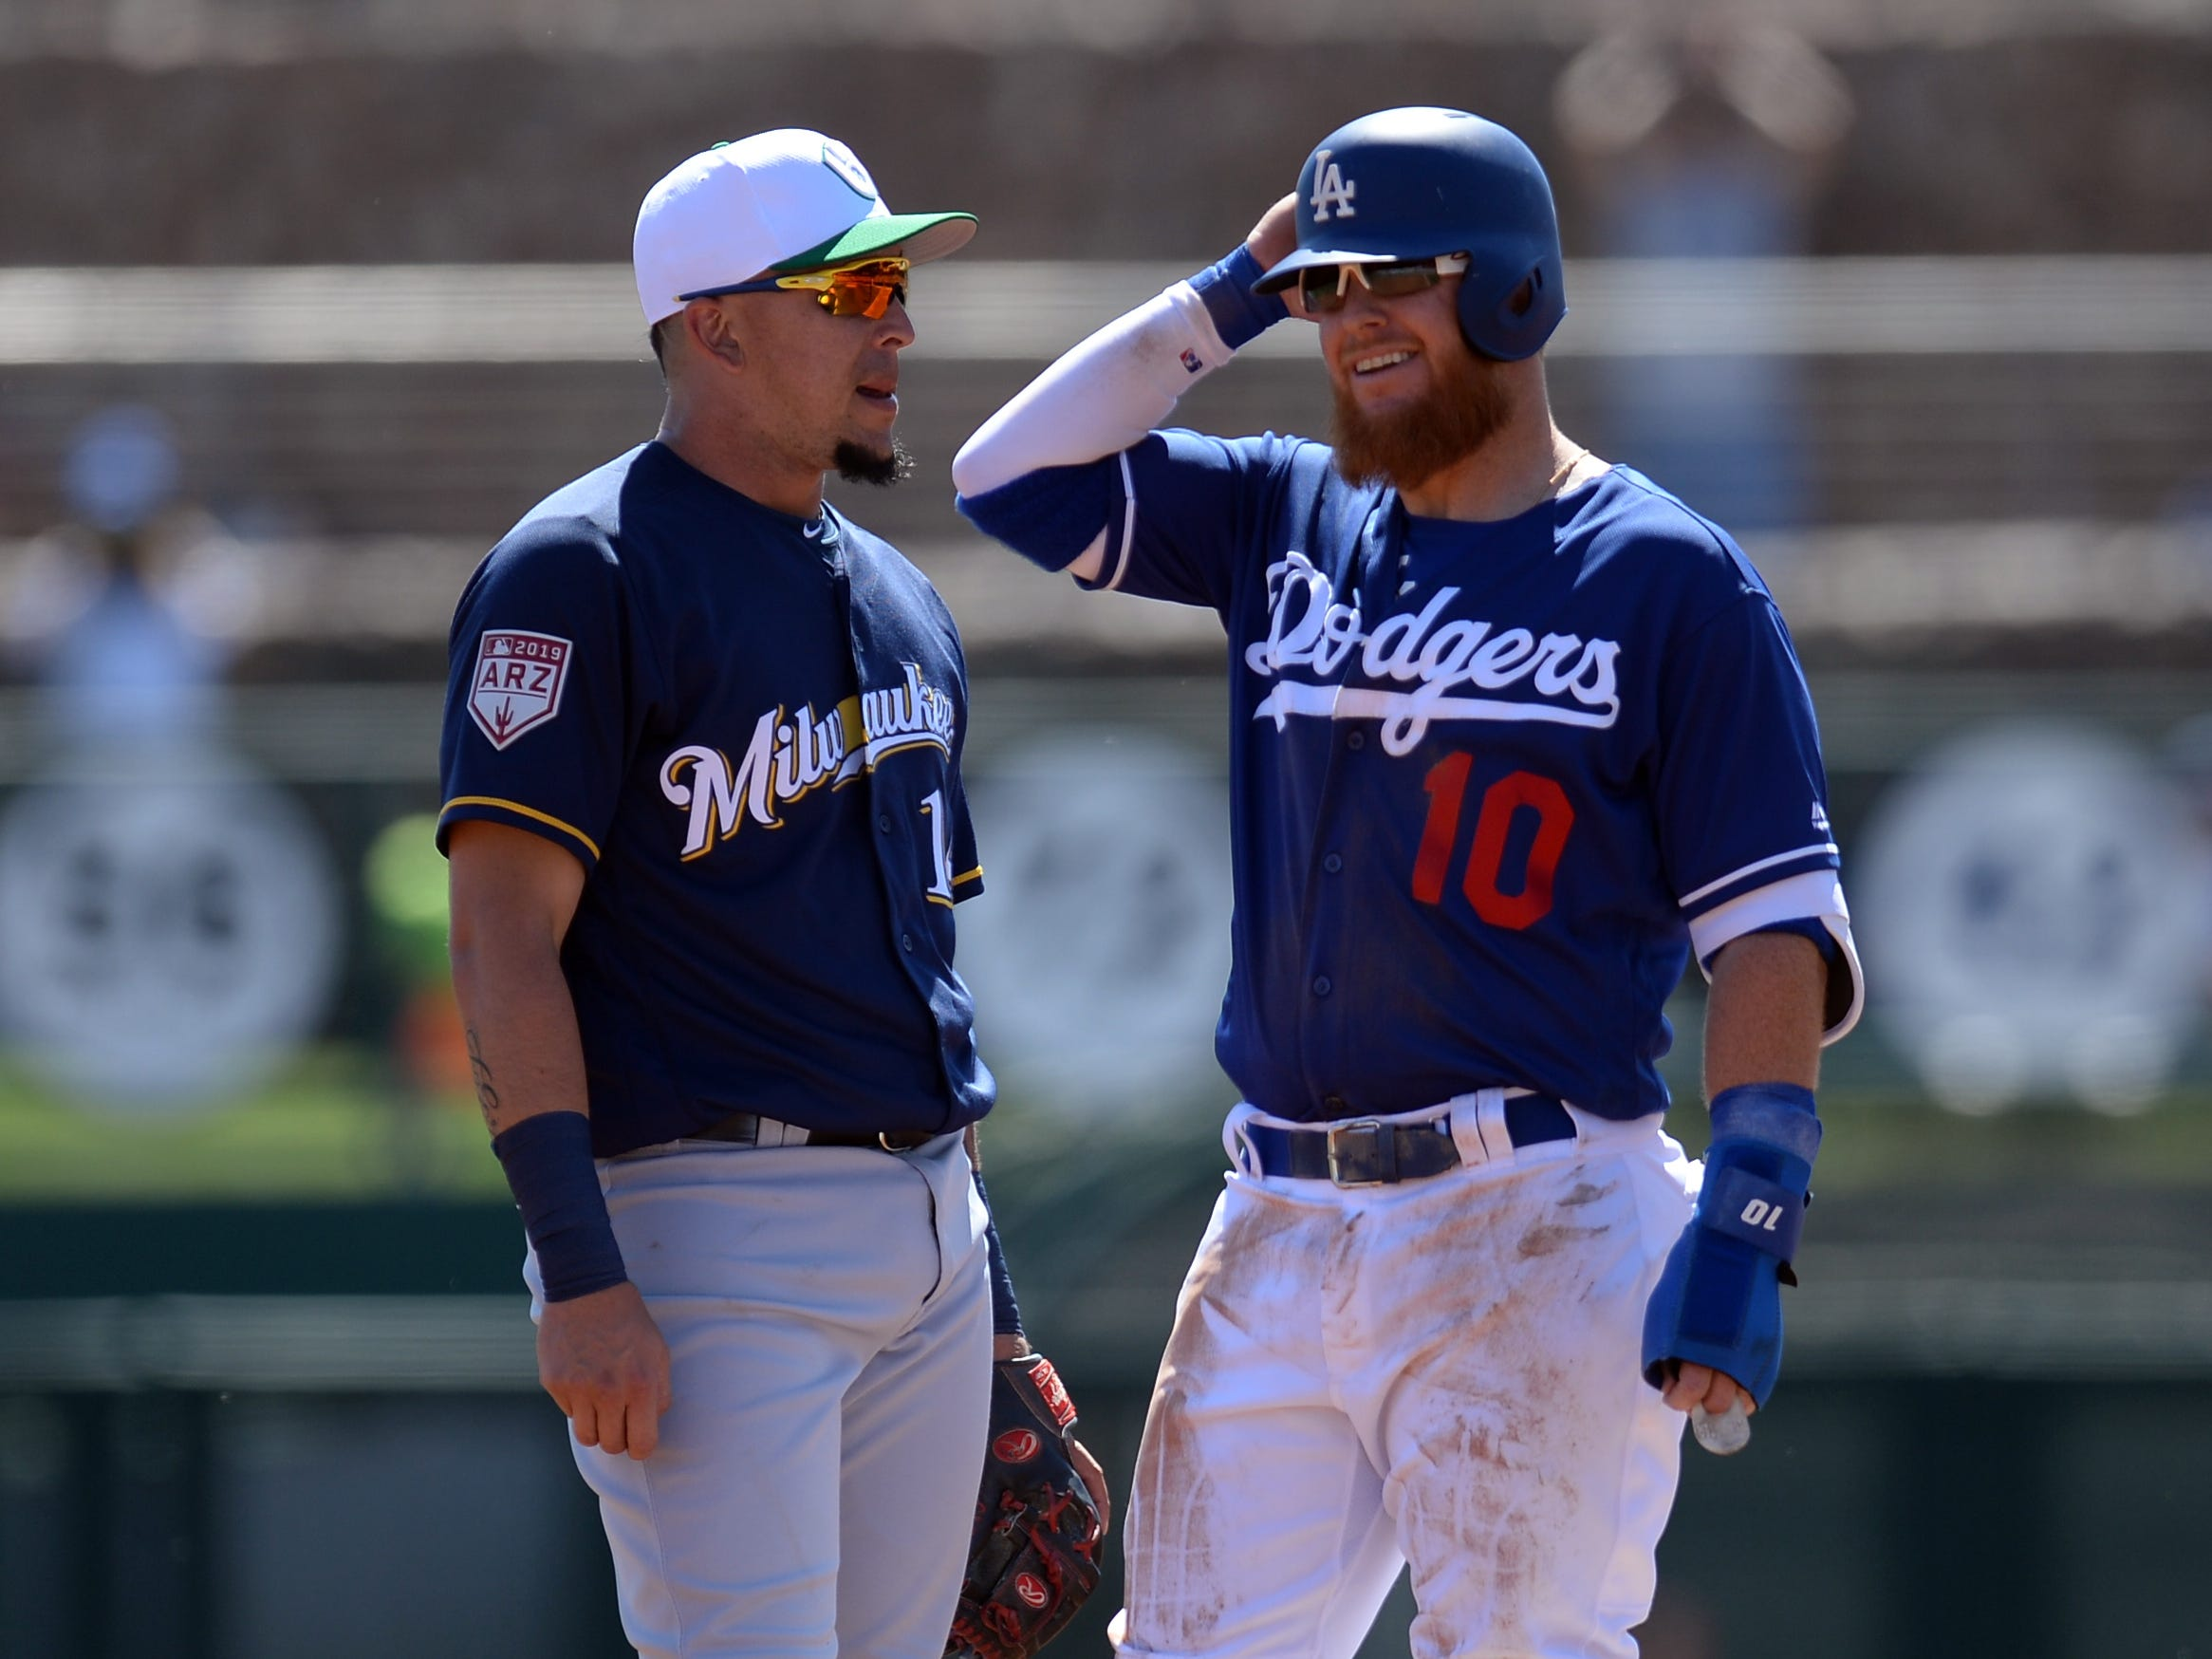 Brewers third baseman Hernan Perez and Dodgers third baseman Justin Turner talk during a small break in the action during the bottom of the first inning.